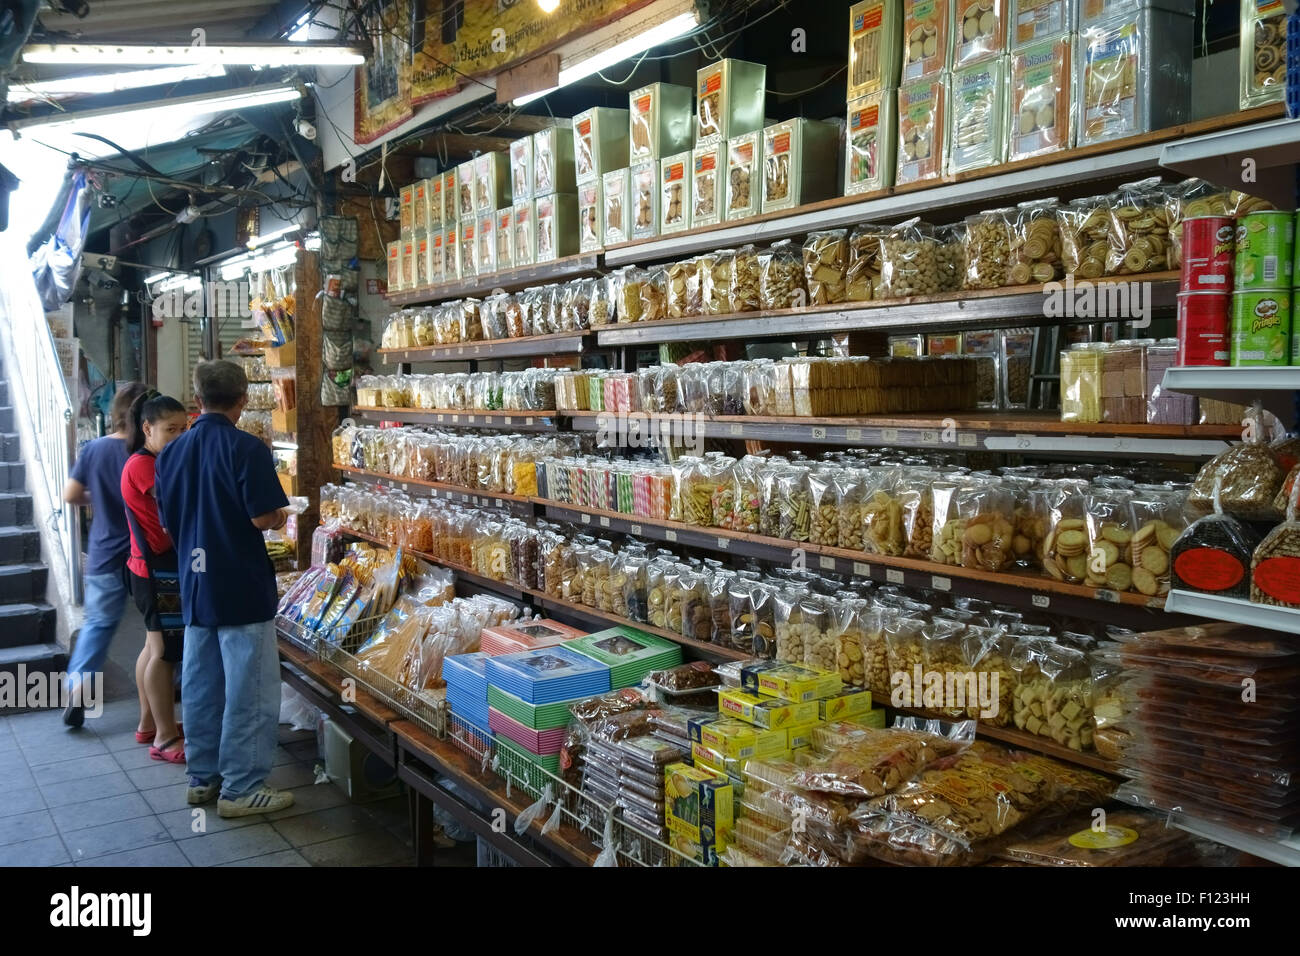 A variety of products in packets, boxes and jars in a stall in a Bangkok food market, Thailand - Stock Image